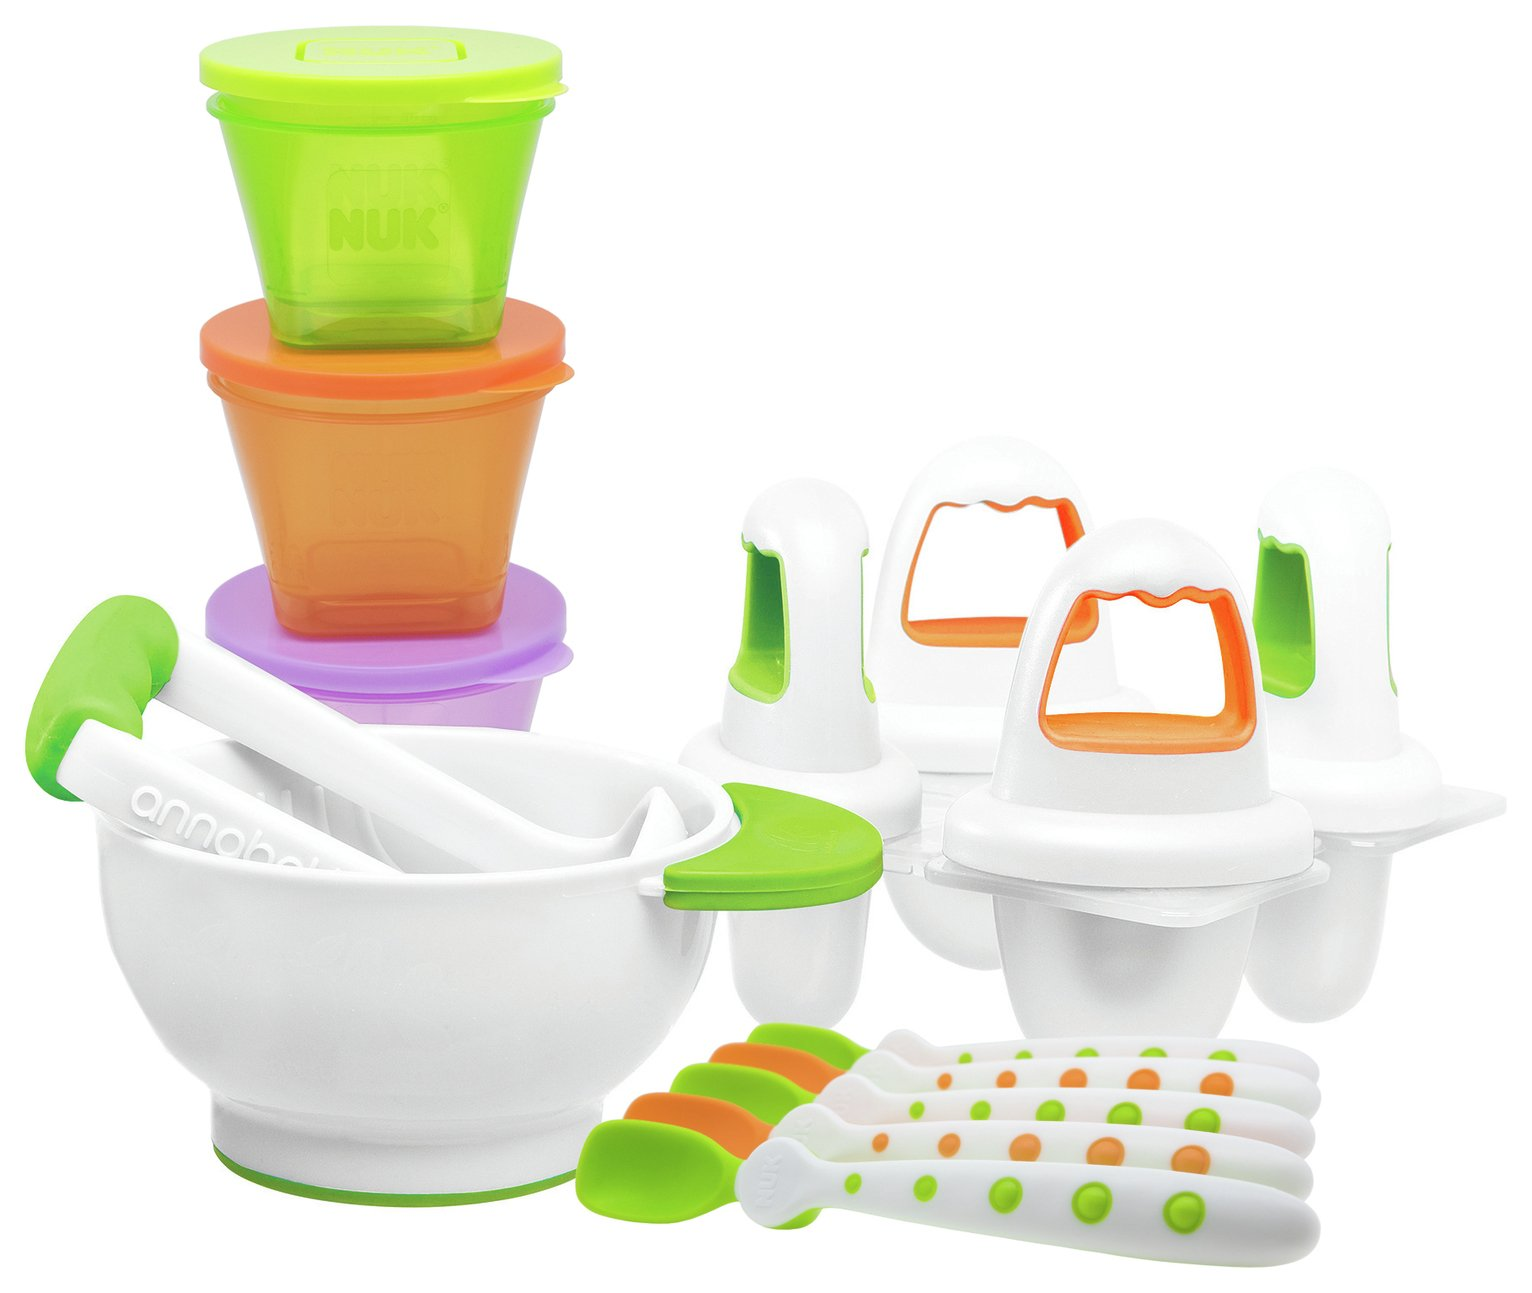 Annabel Karmel by NUK Weaning Set